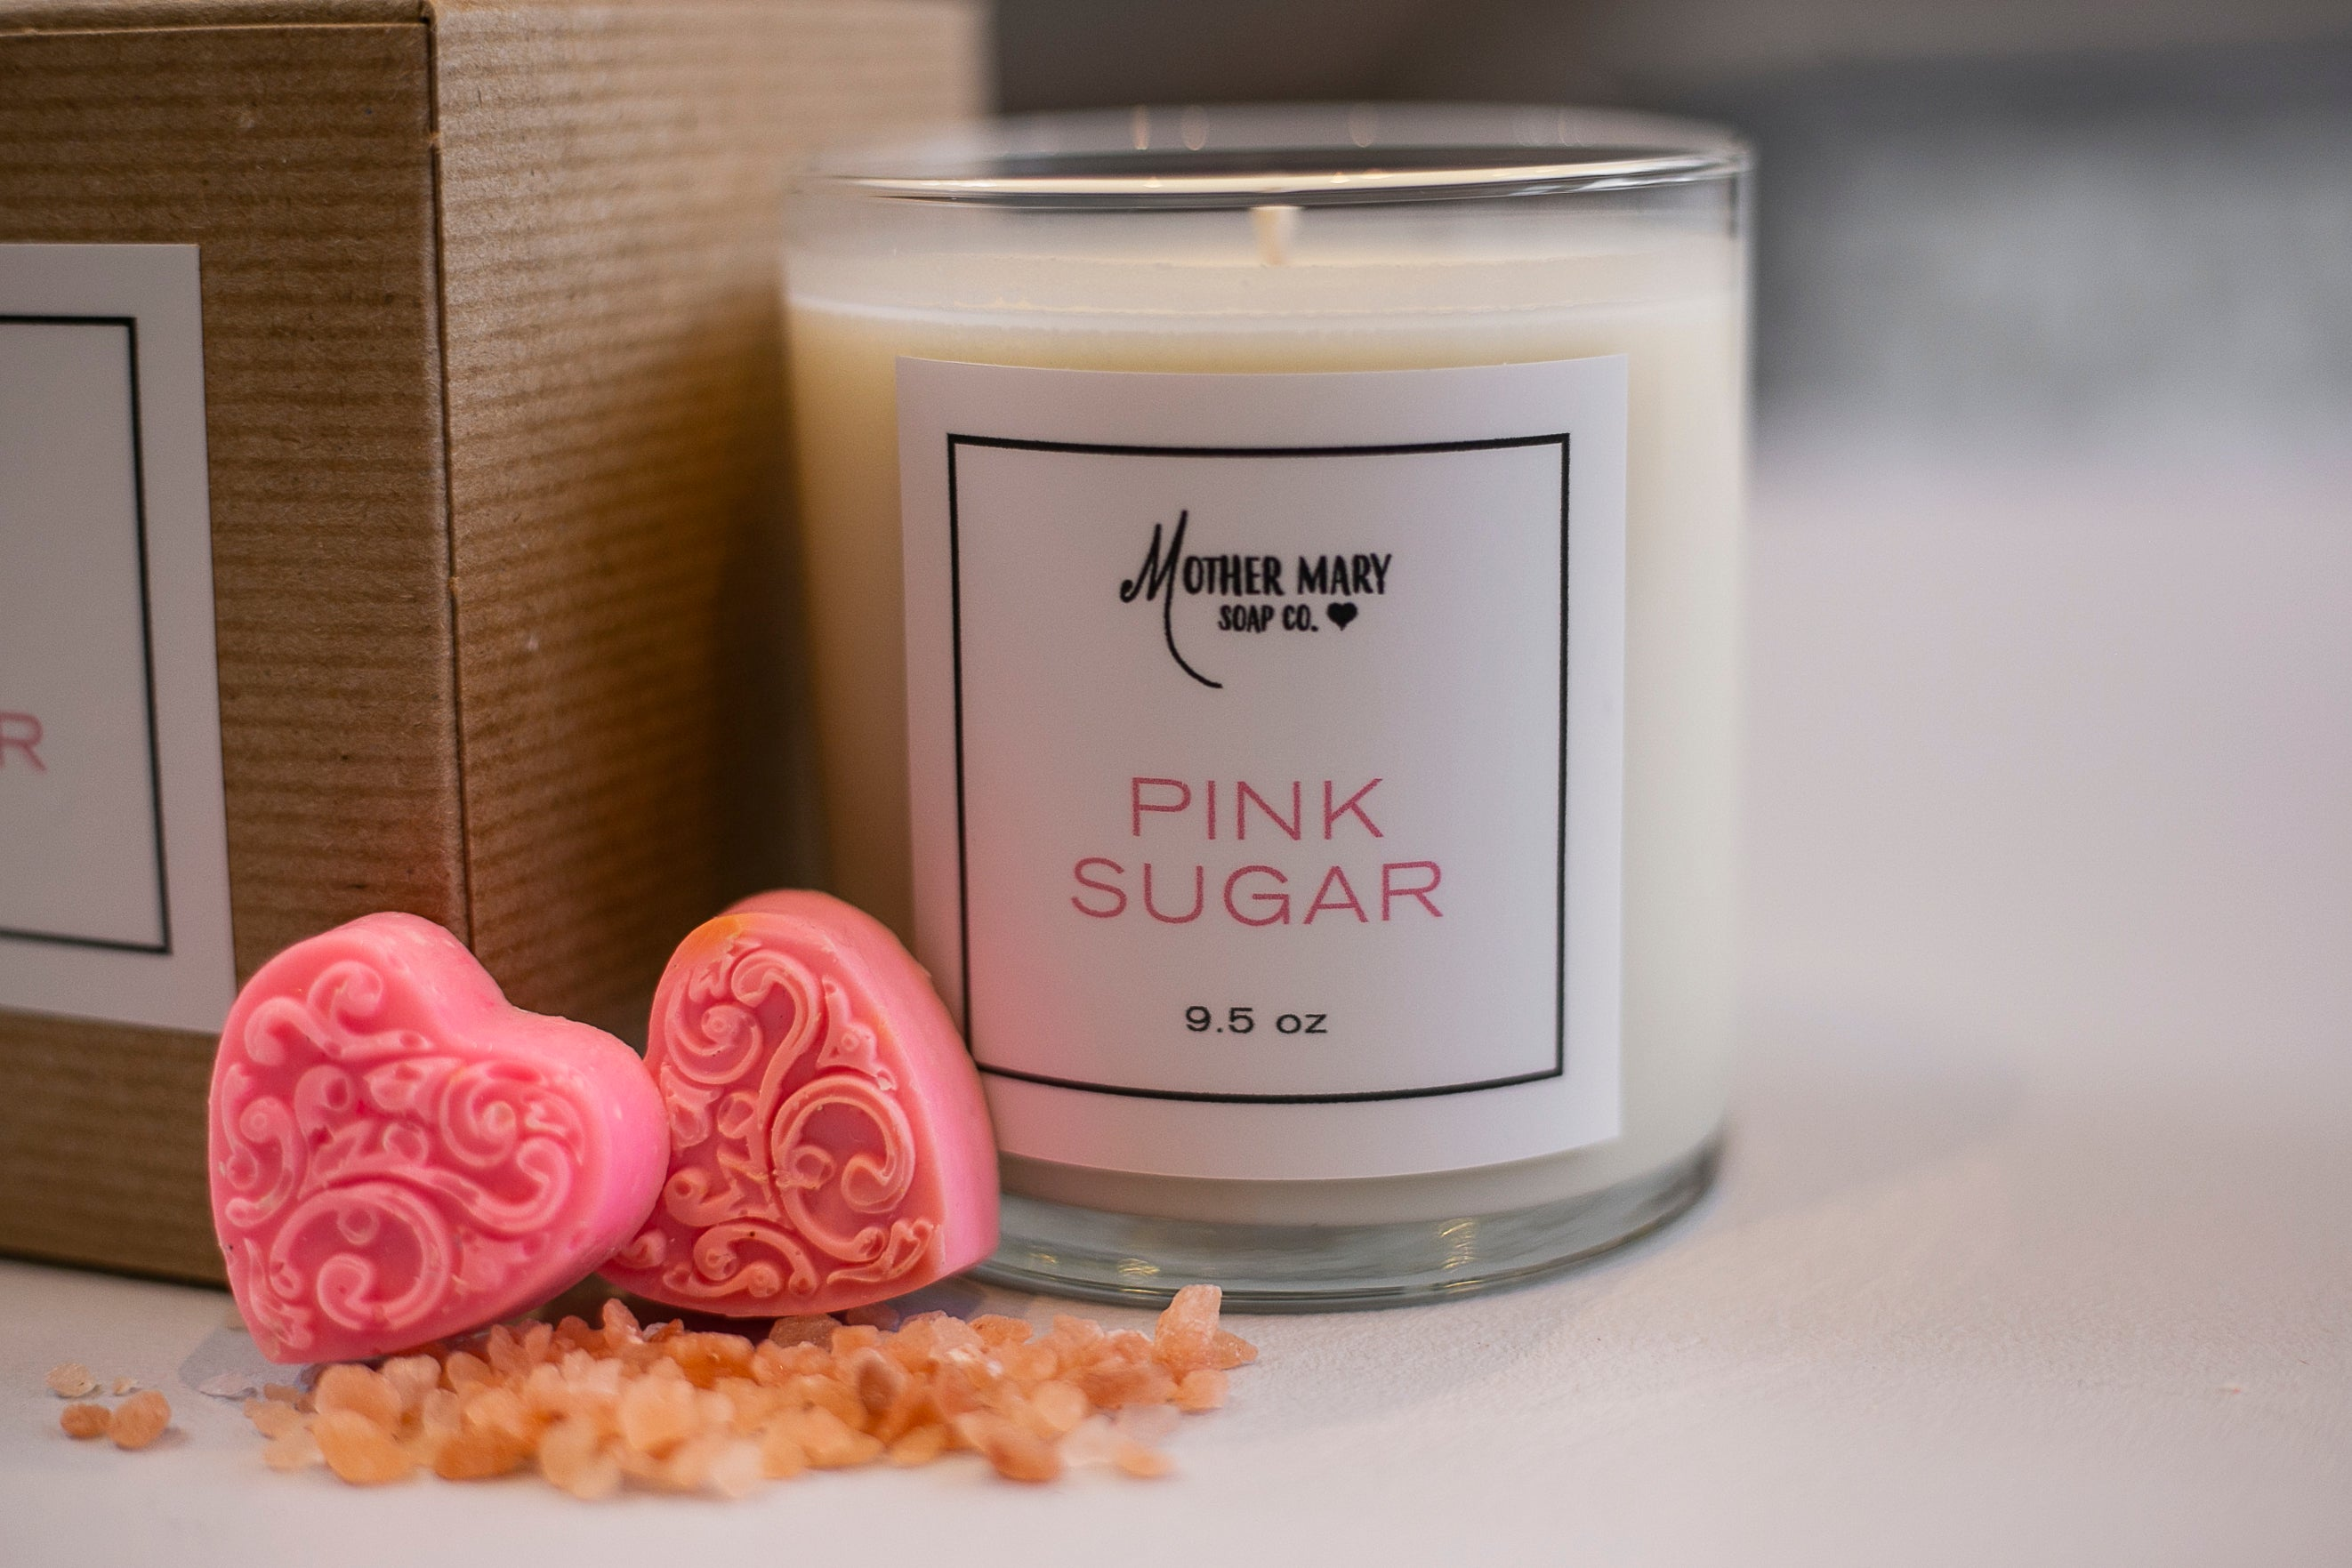 Pink Sugar Candle - Mother Mary Soap Company